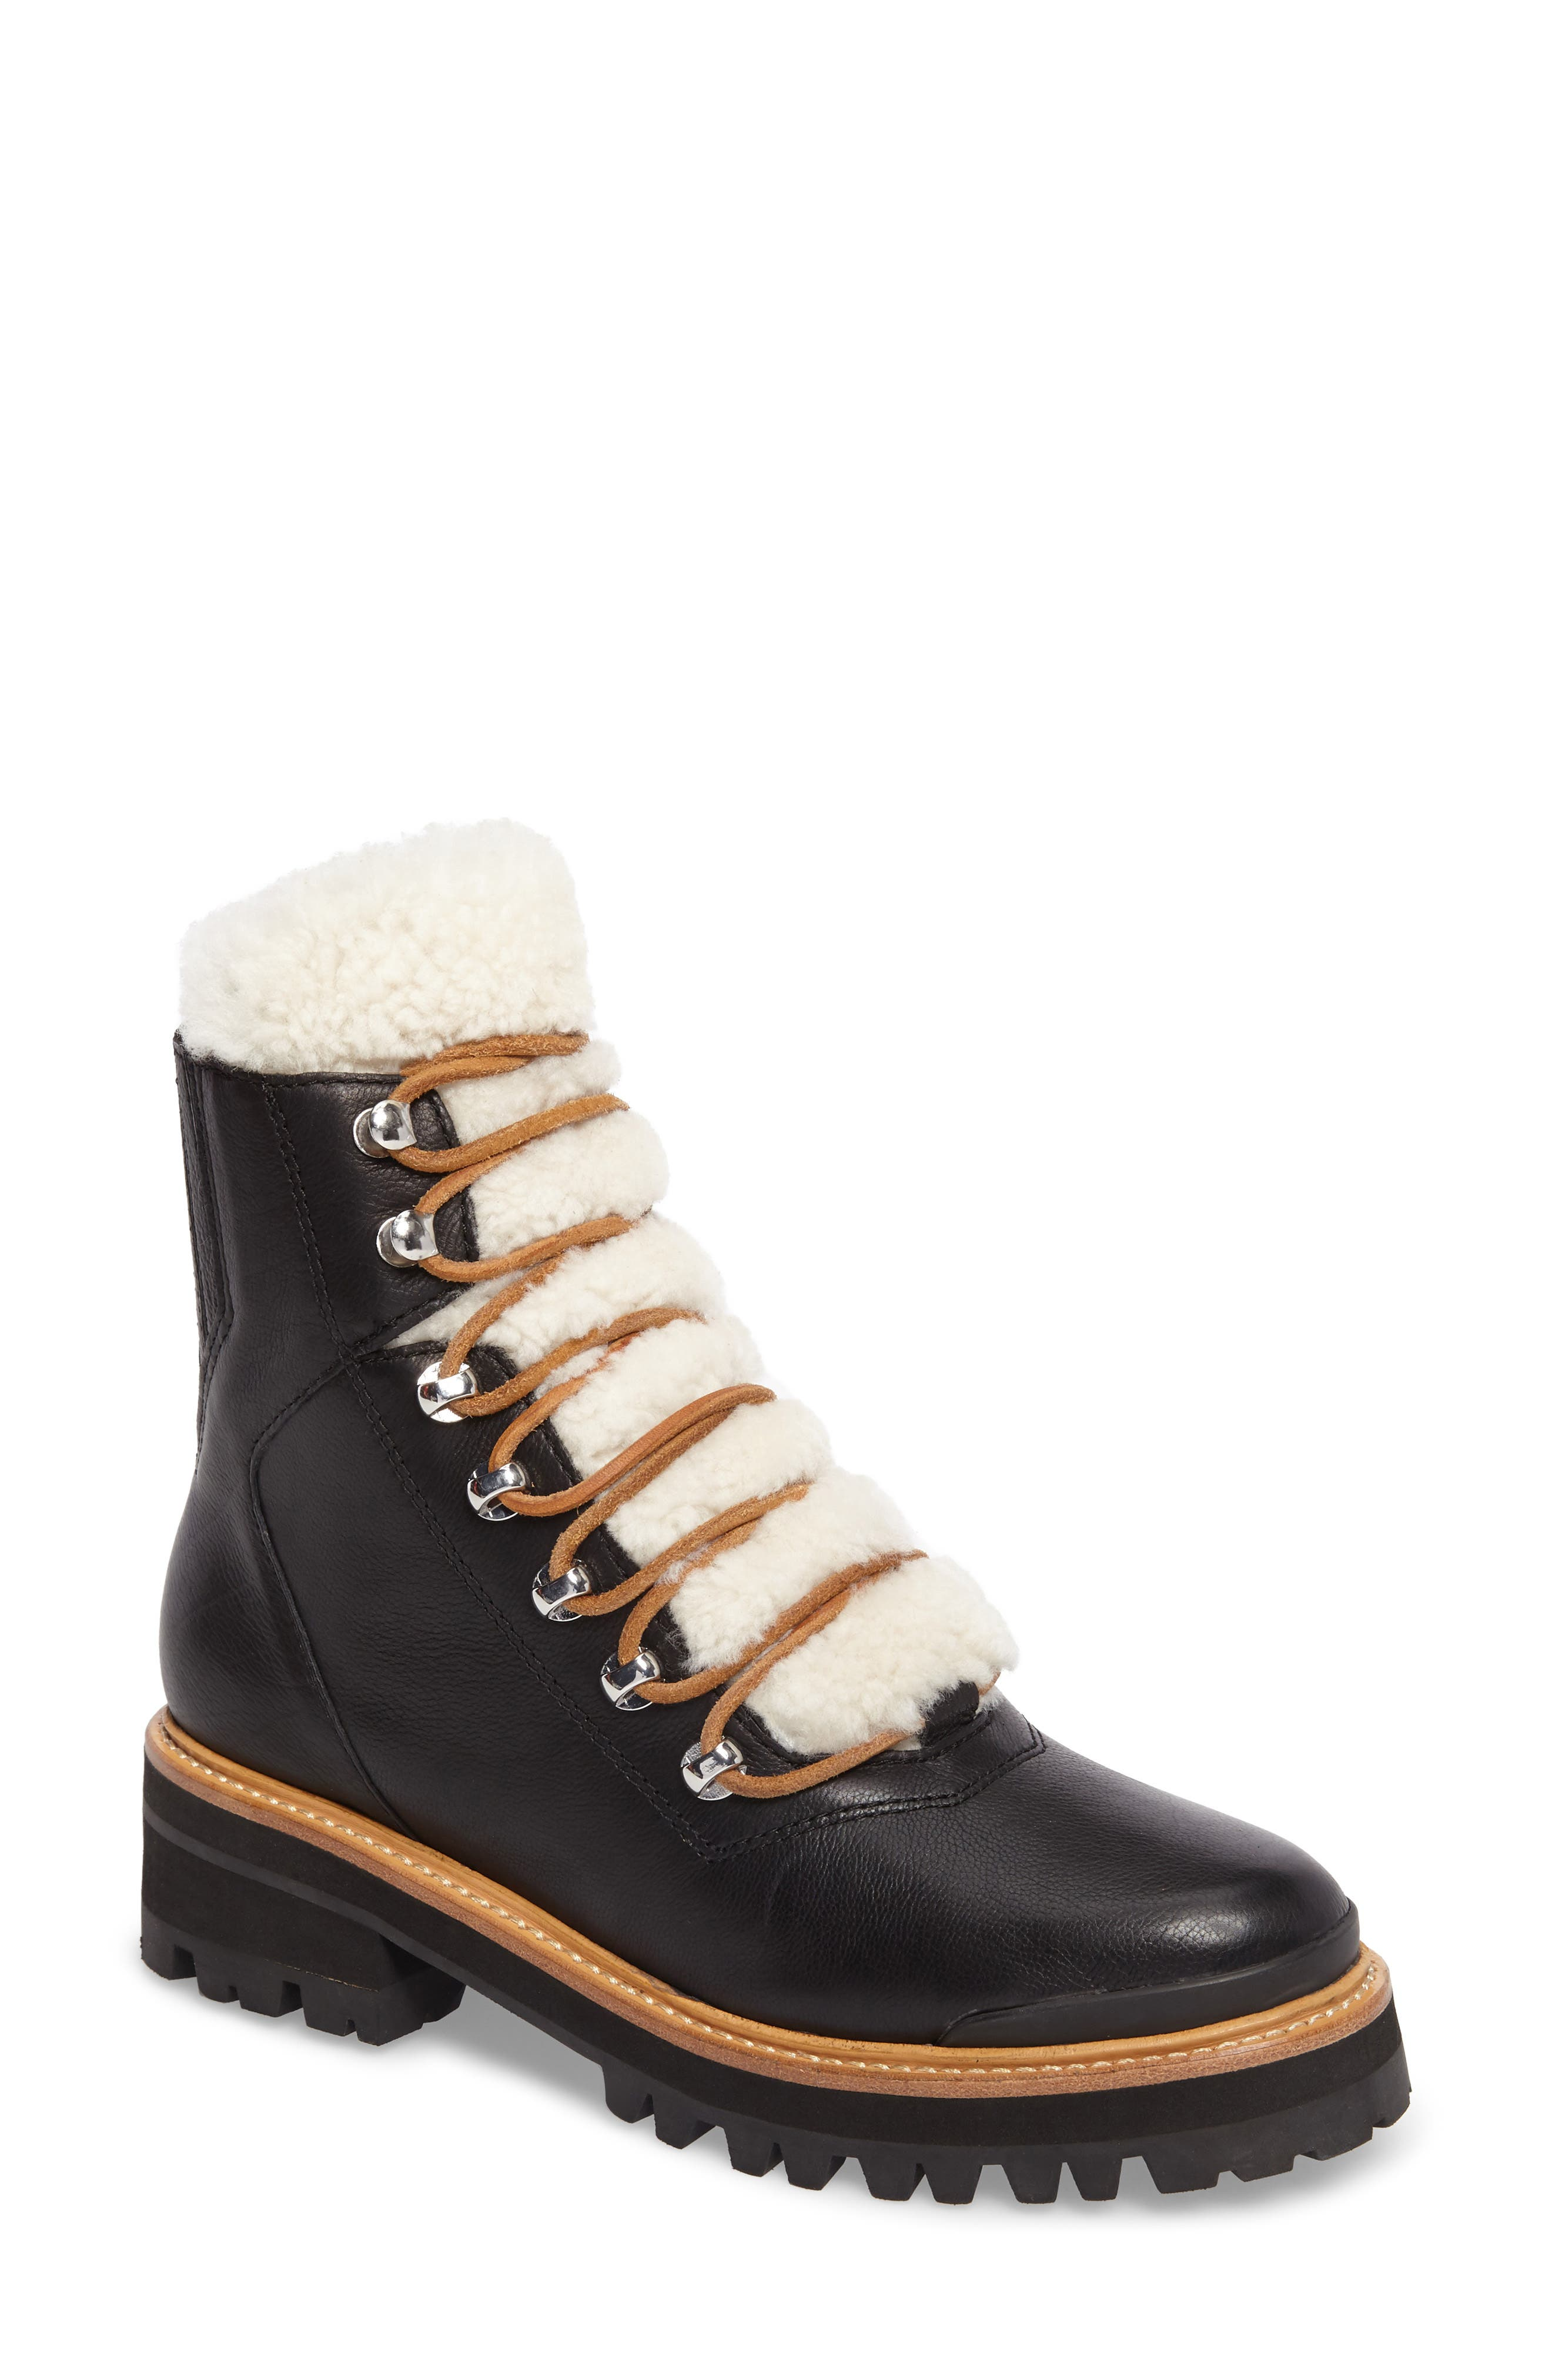 Women's Lace-Up Boots   Nordstrom